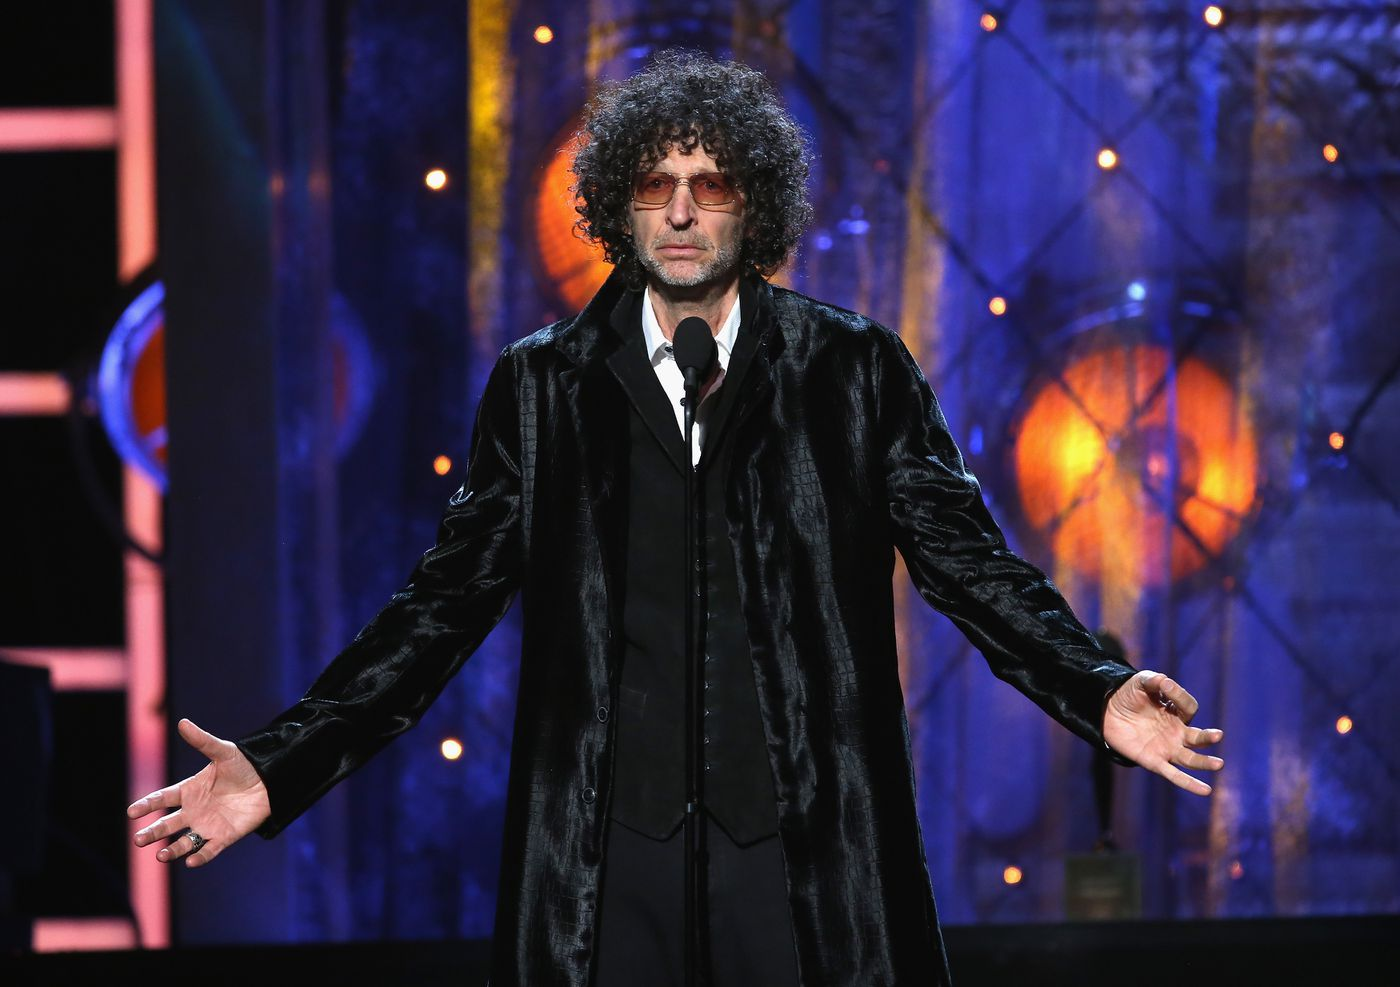 Howard Stern Slams August Alsina For Revealing Affair With Jada Pinkett — Asks If He Could Be Next